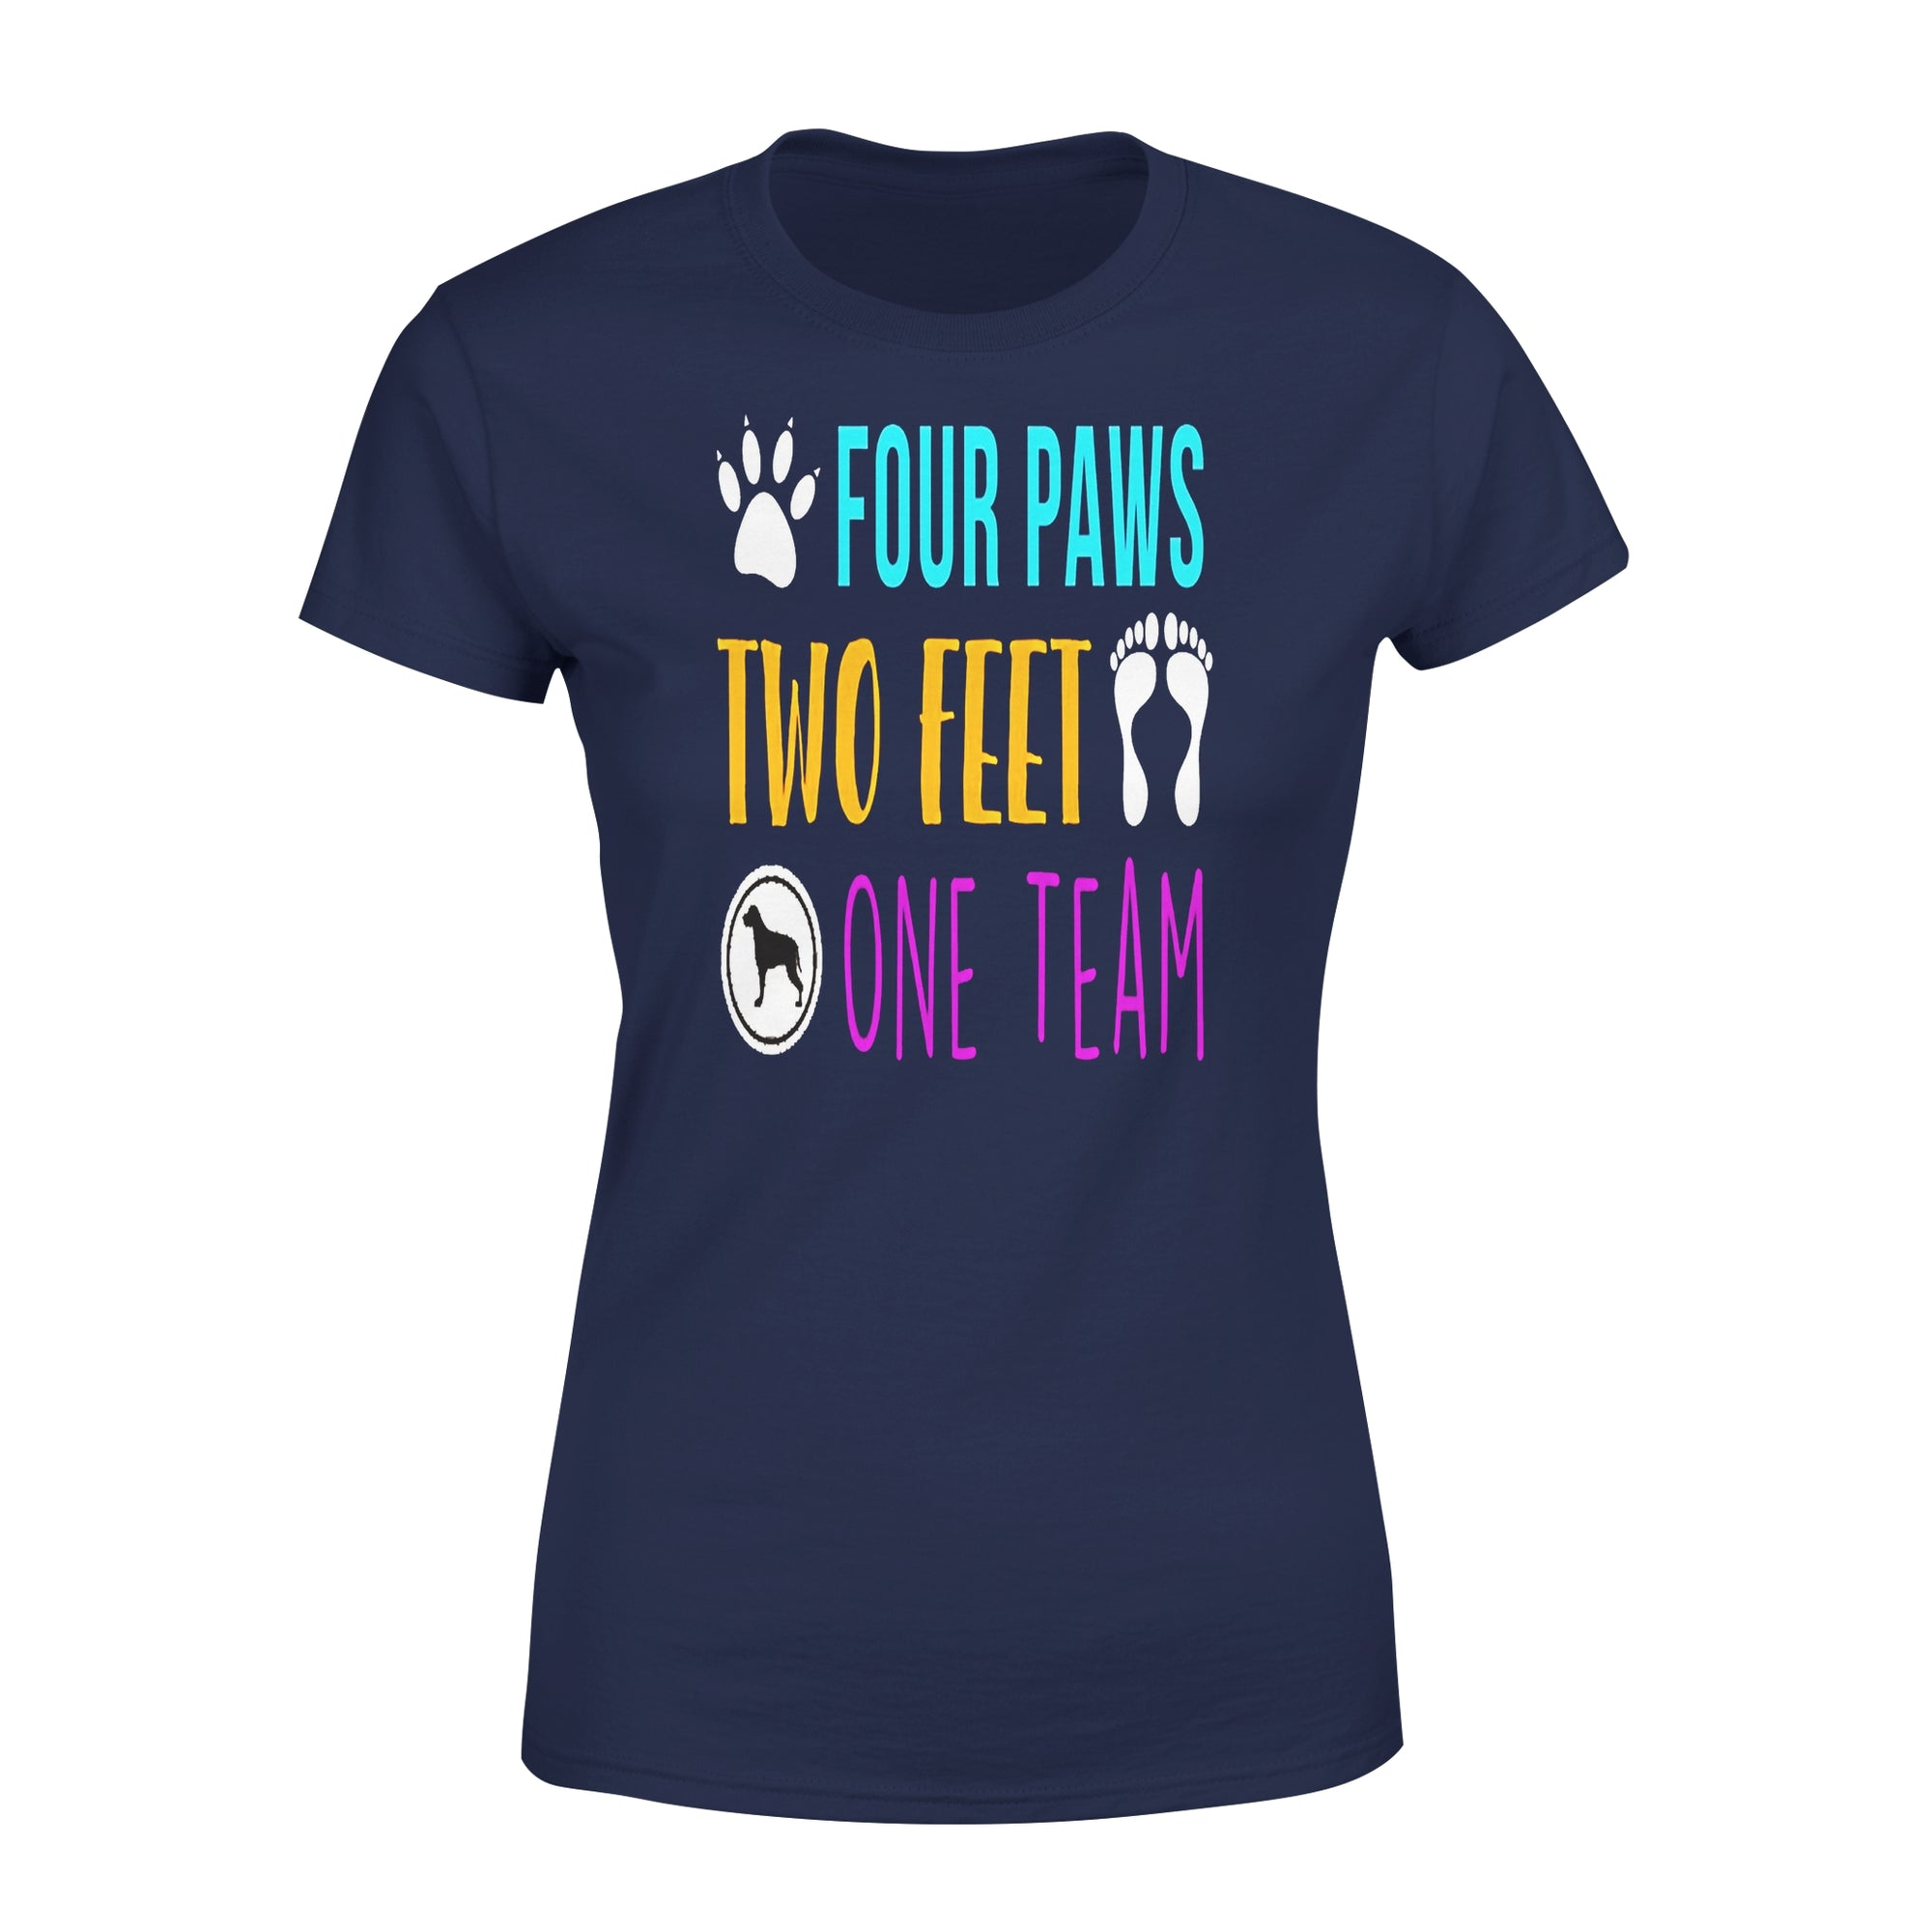 VIRA Premium Women's Tee For Golden Retriever Lovers